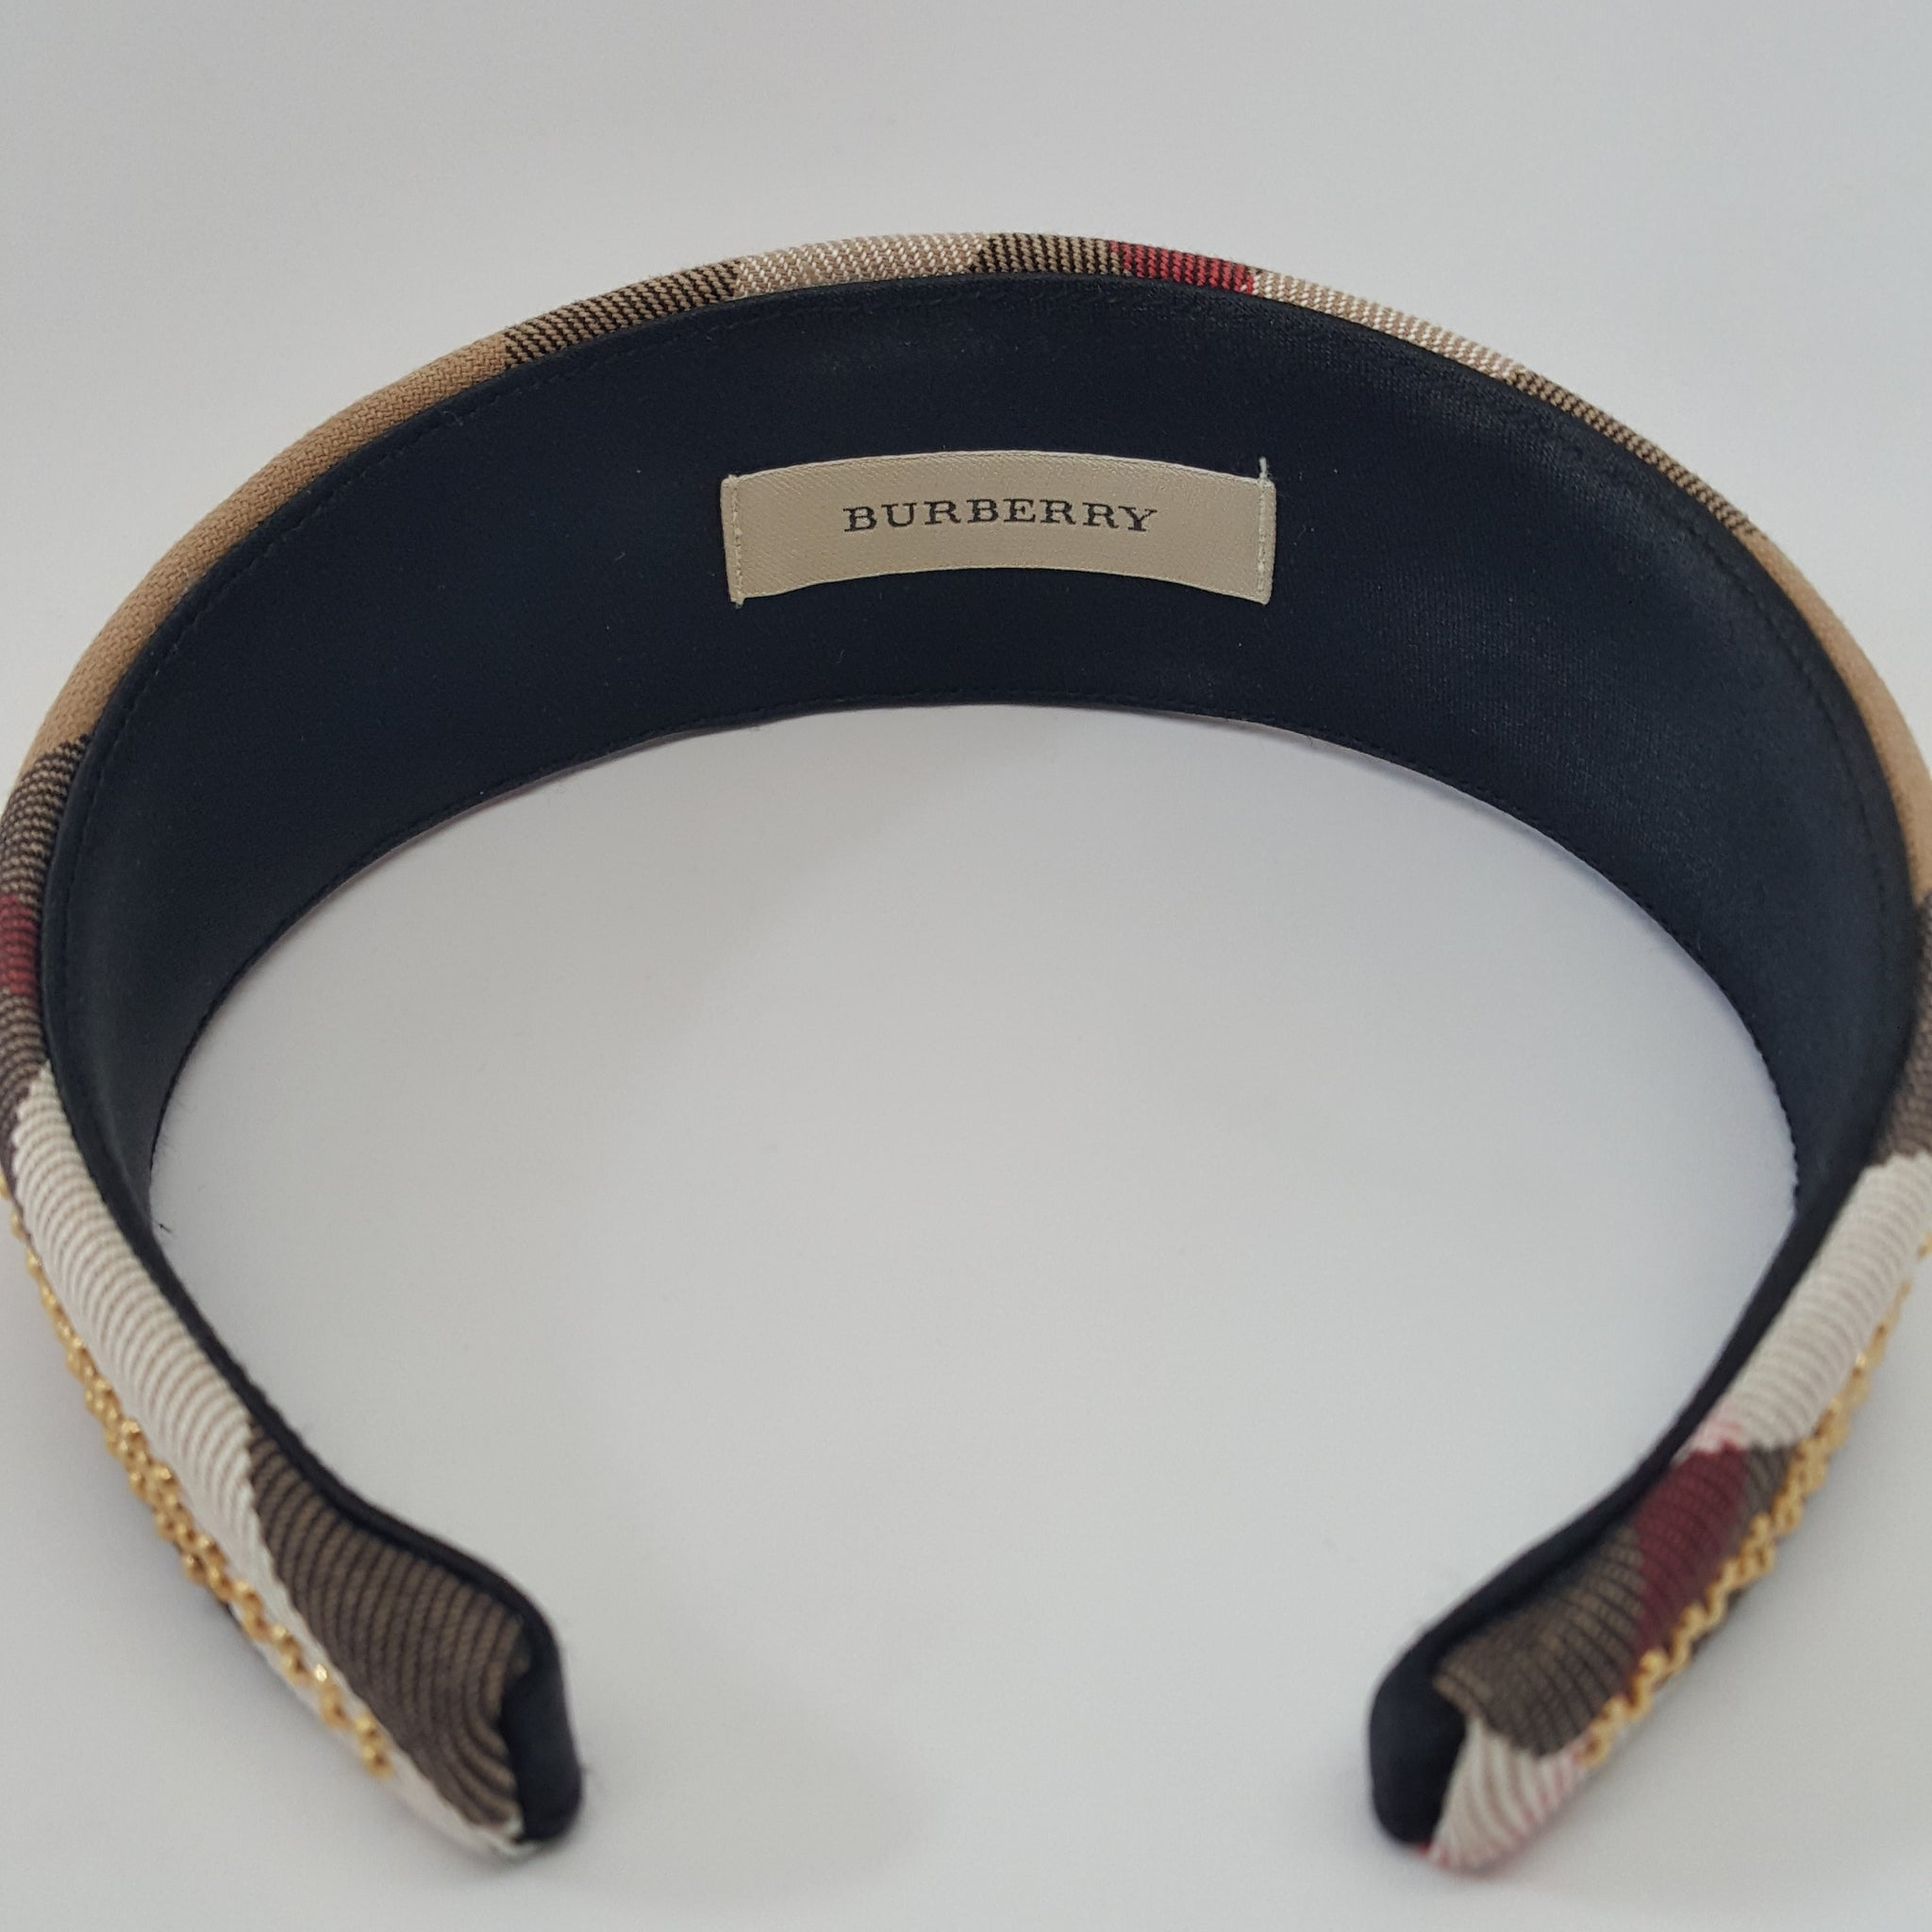 BURBERRY HOUSECHECK STUDDED HEADBAND - ONE SIZE